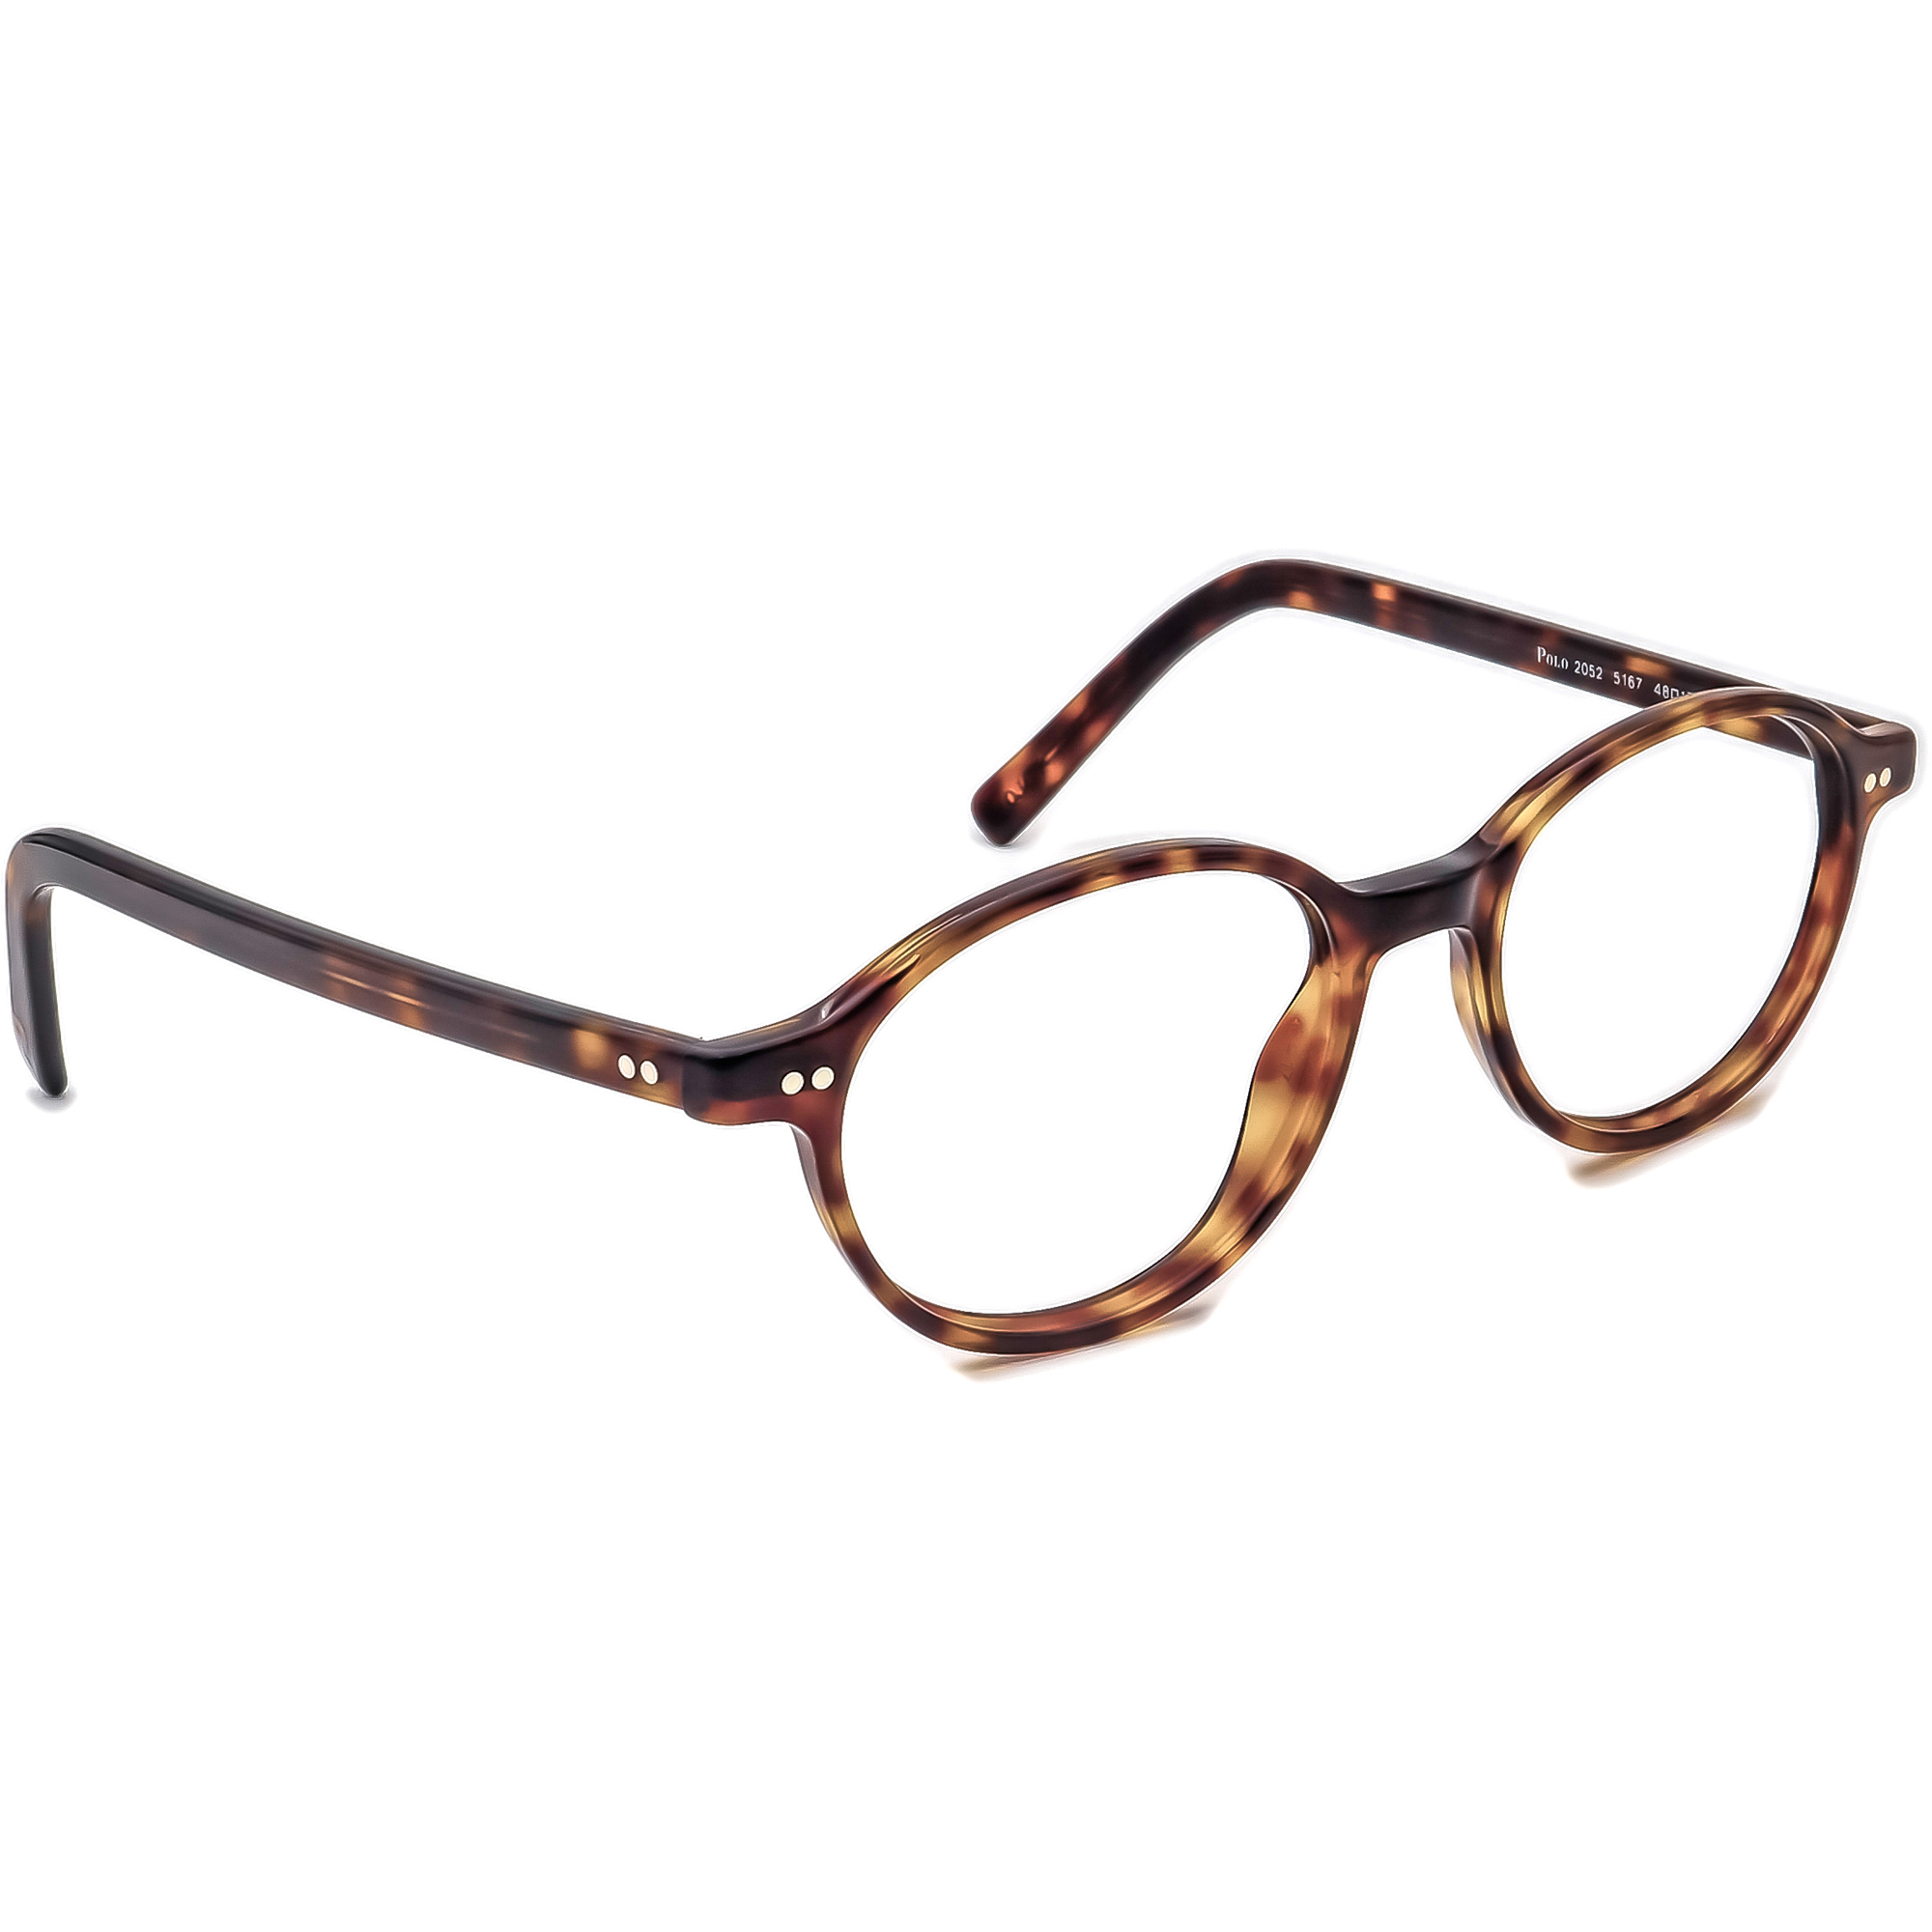 Ralph Lauren Polo 2052 5167 Eyeglasses